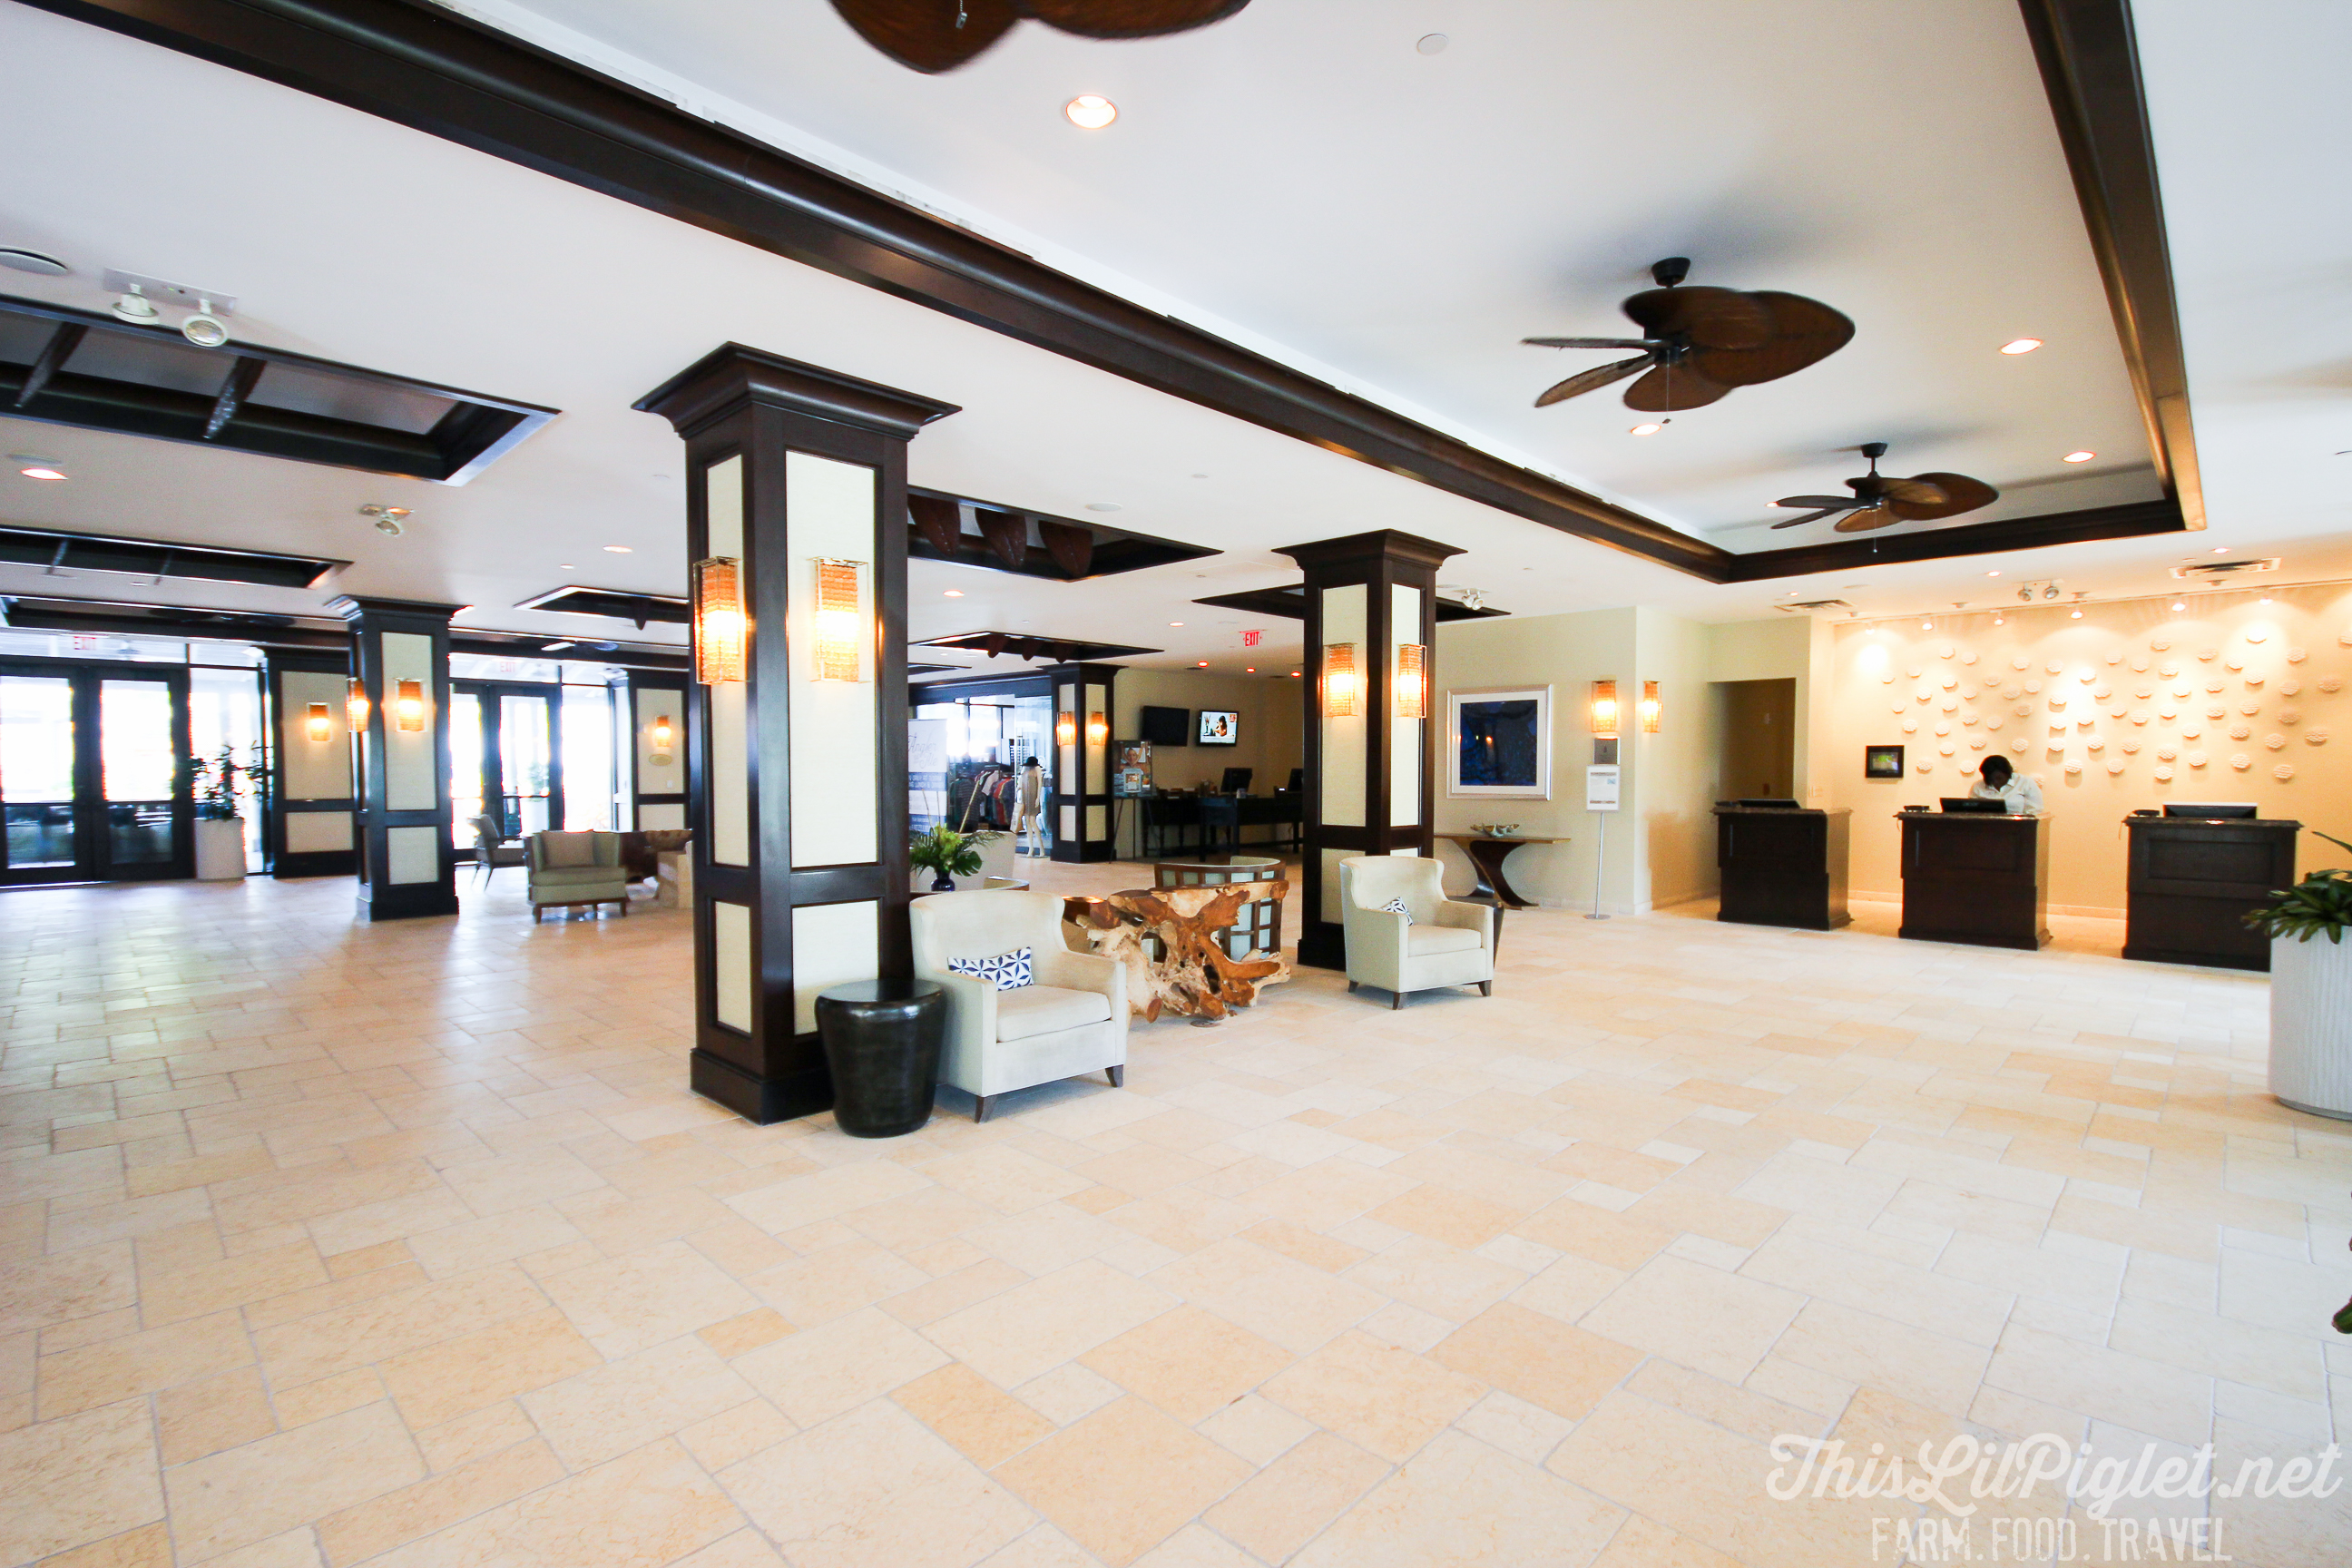 Luxury Family Travel at Hawks Cay Resort Lobby in the Florida Keys // thislilpiglet.net